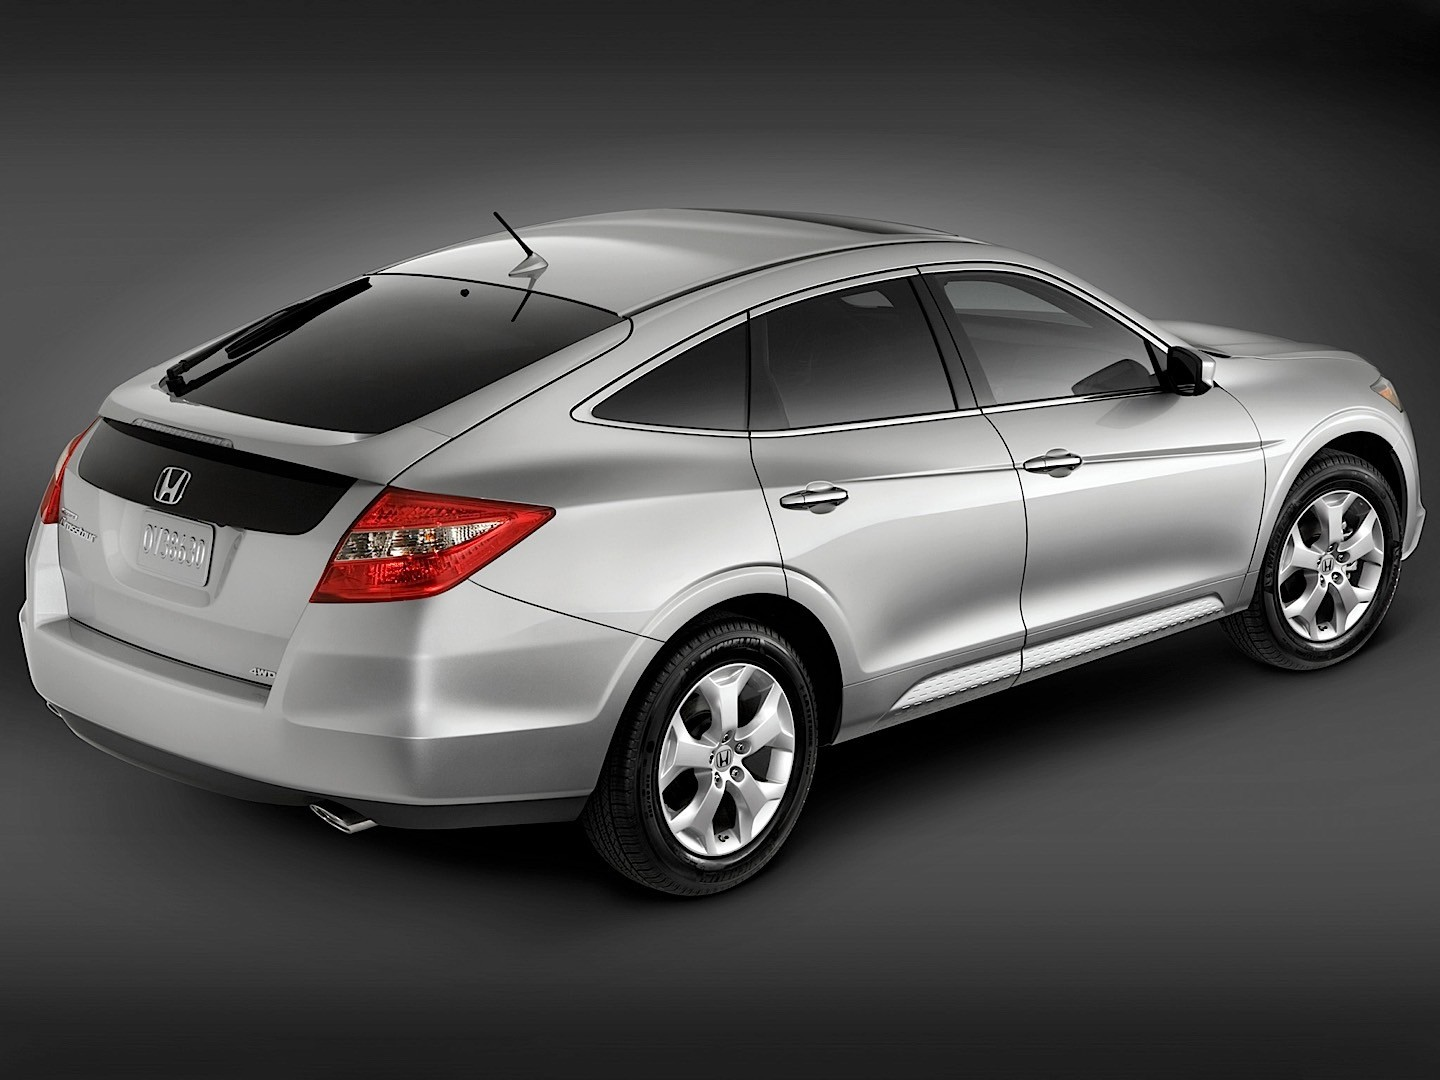 2011 Honda Accord For Sale >> HONDA Accord Crosstour - 2009, 2010, 2011, 2012, 2013 - autoevolution